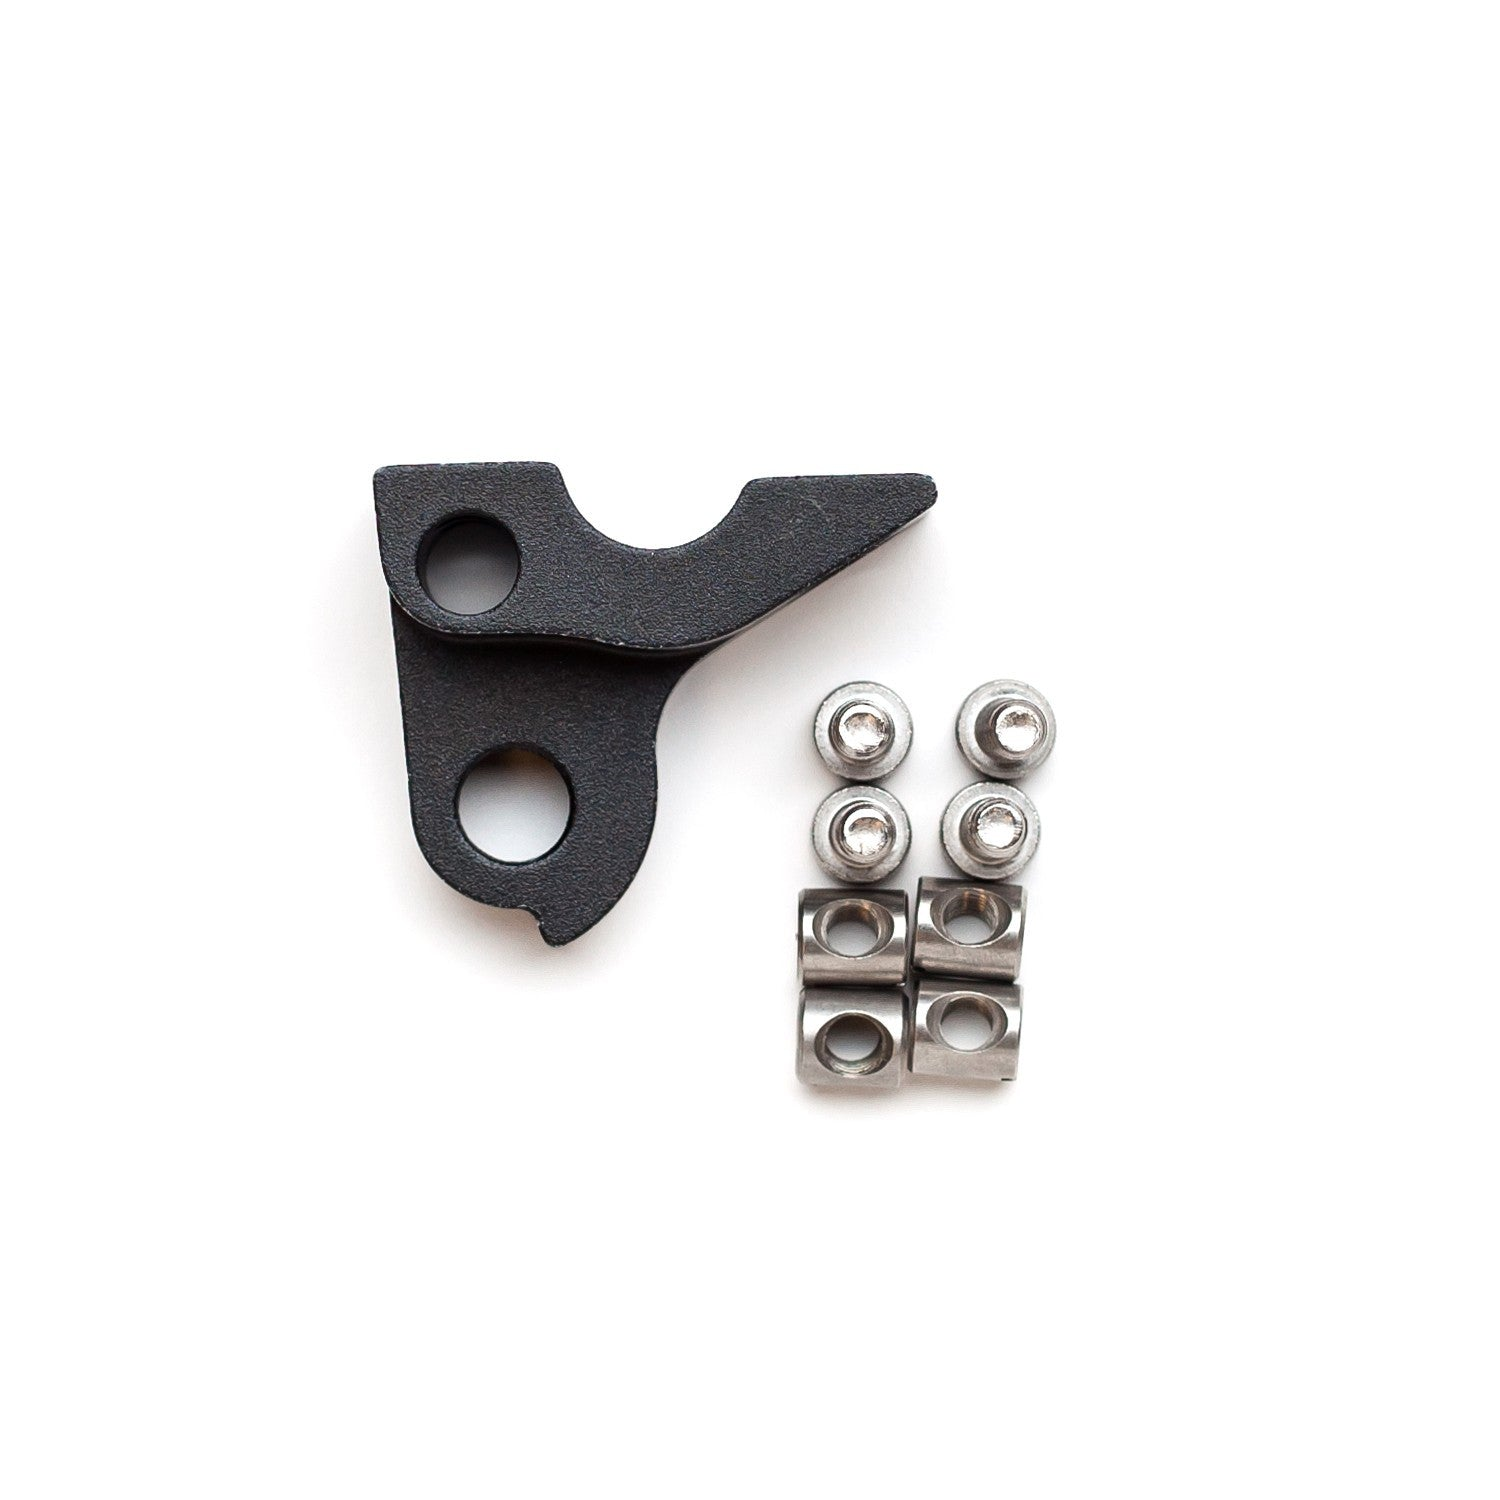 Yeti Parts - 303-DH 06-09 Hanger with bolts